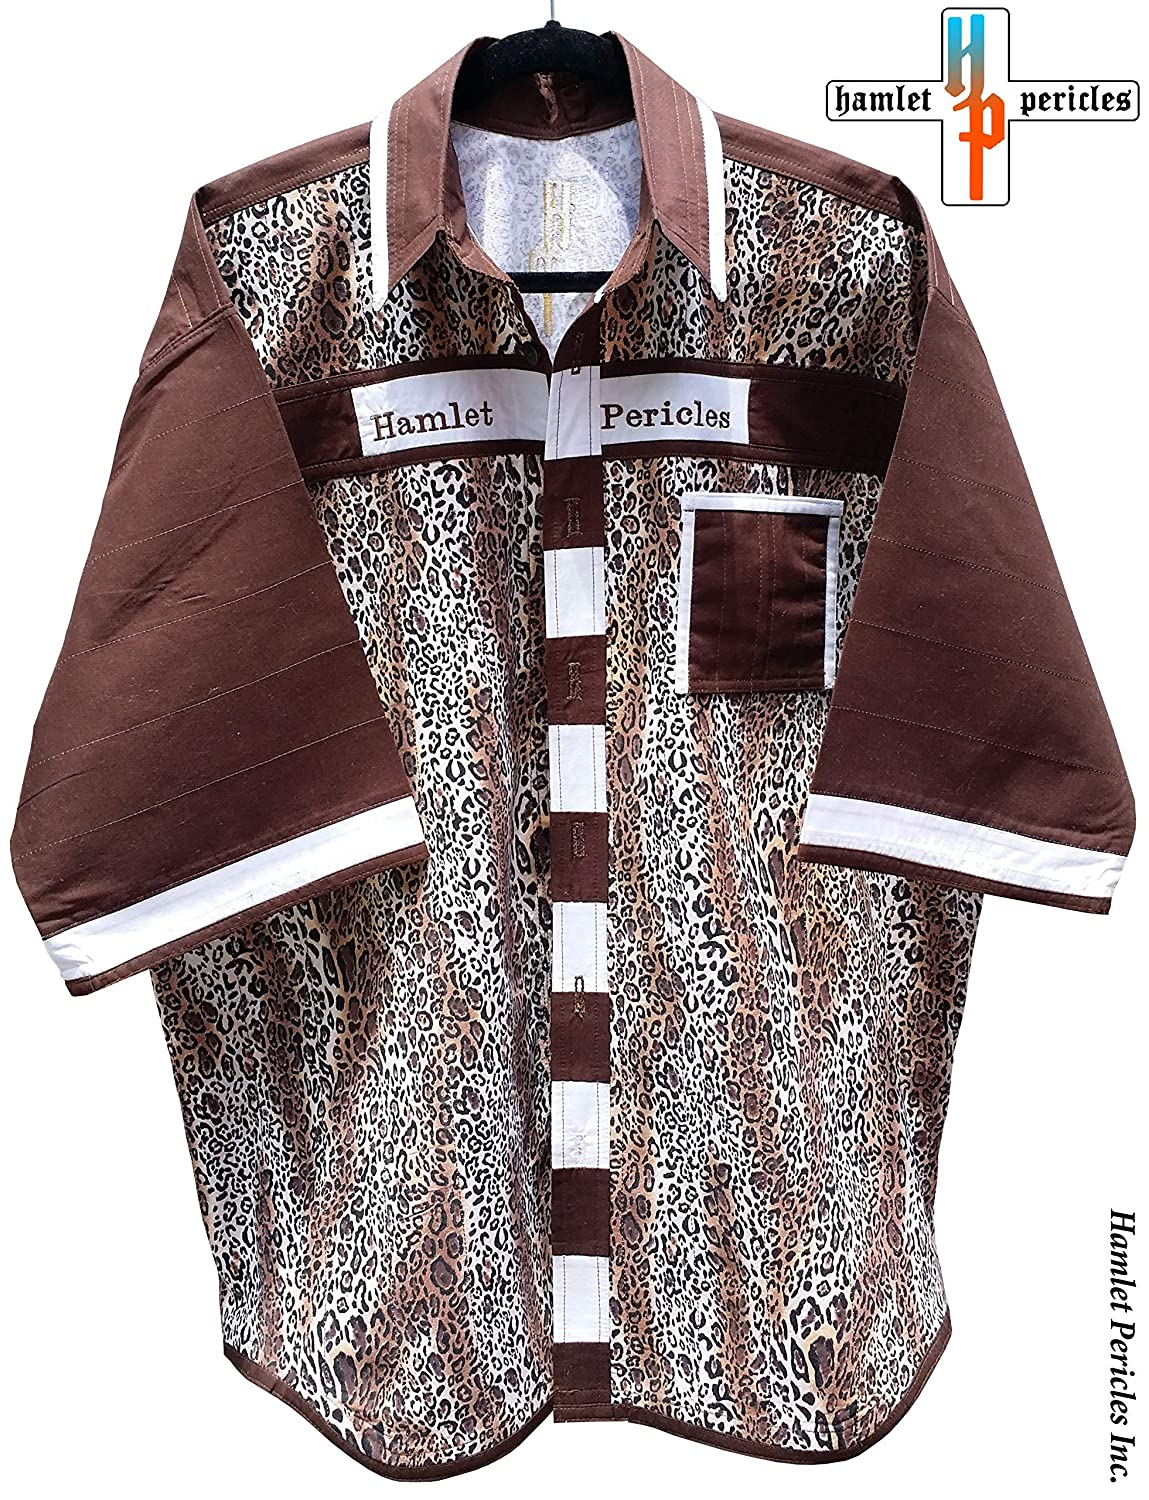 Amazon.com: Cheetah Print Mens Shirt | XXL Shirt | Big Wild Cat | Brown White Patchwork | Animal Print | Button-up Shirt by Hamlet Pericles | S111212: ...